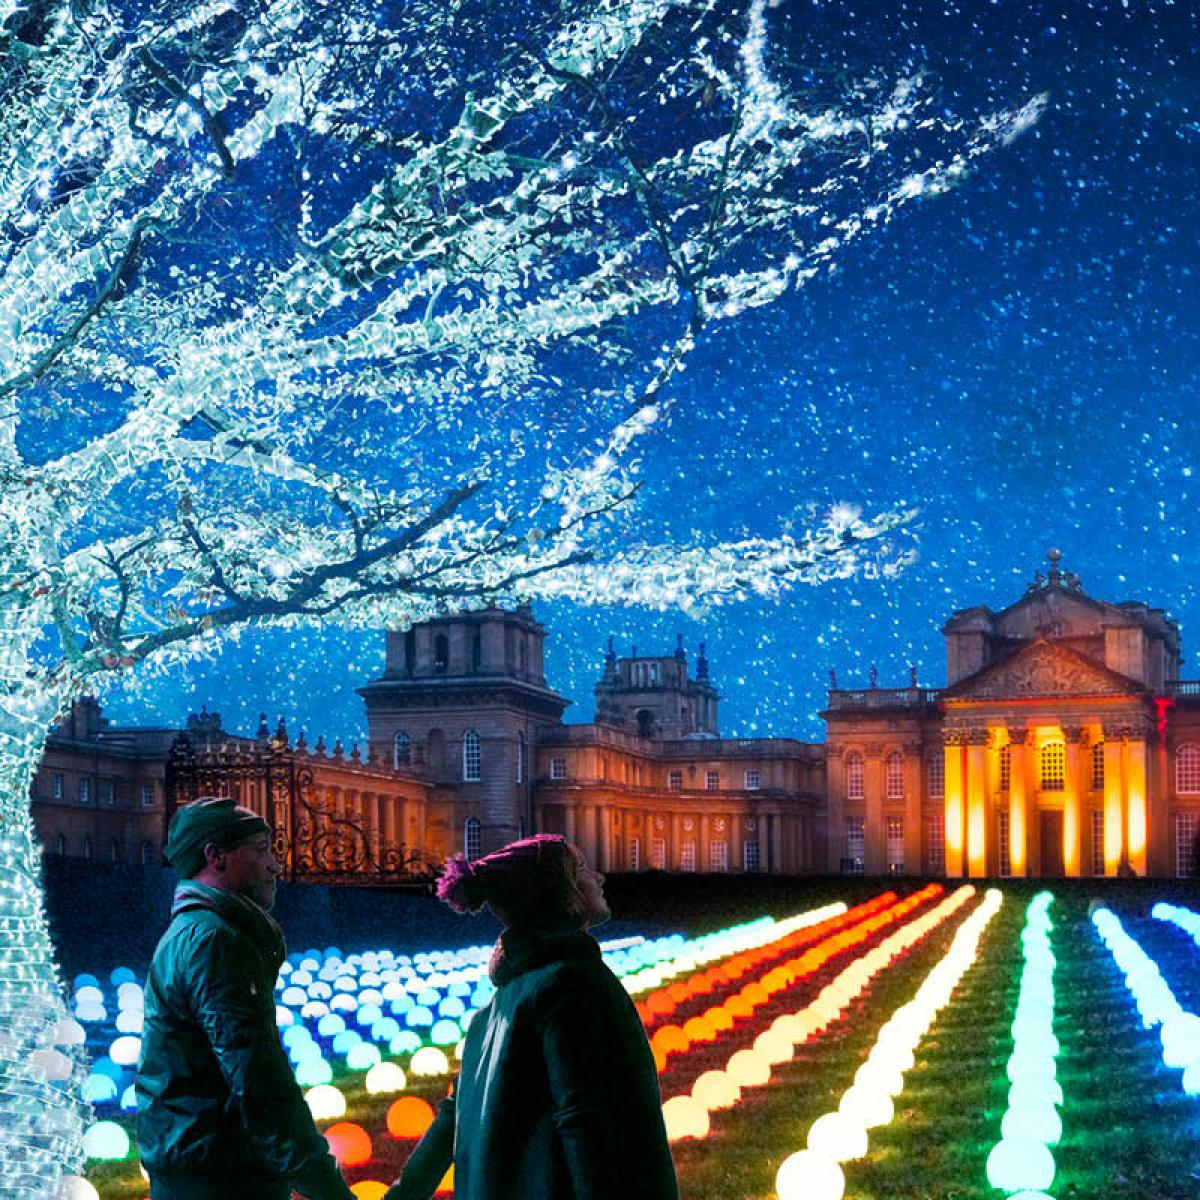 Chirstmas at Blenheim Palace - Light Trail